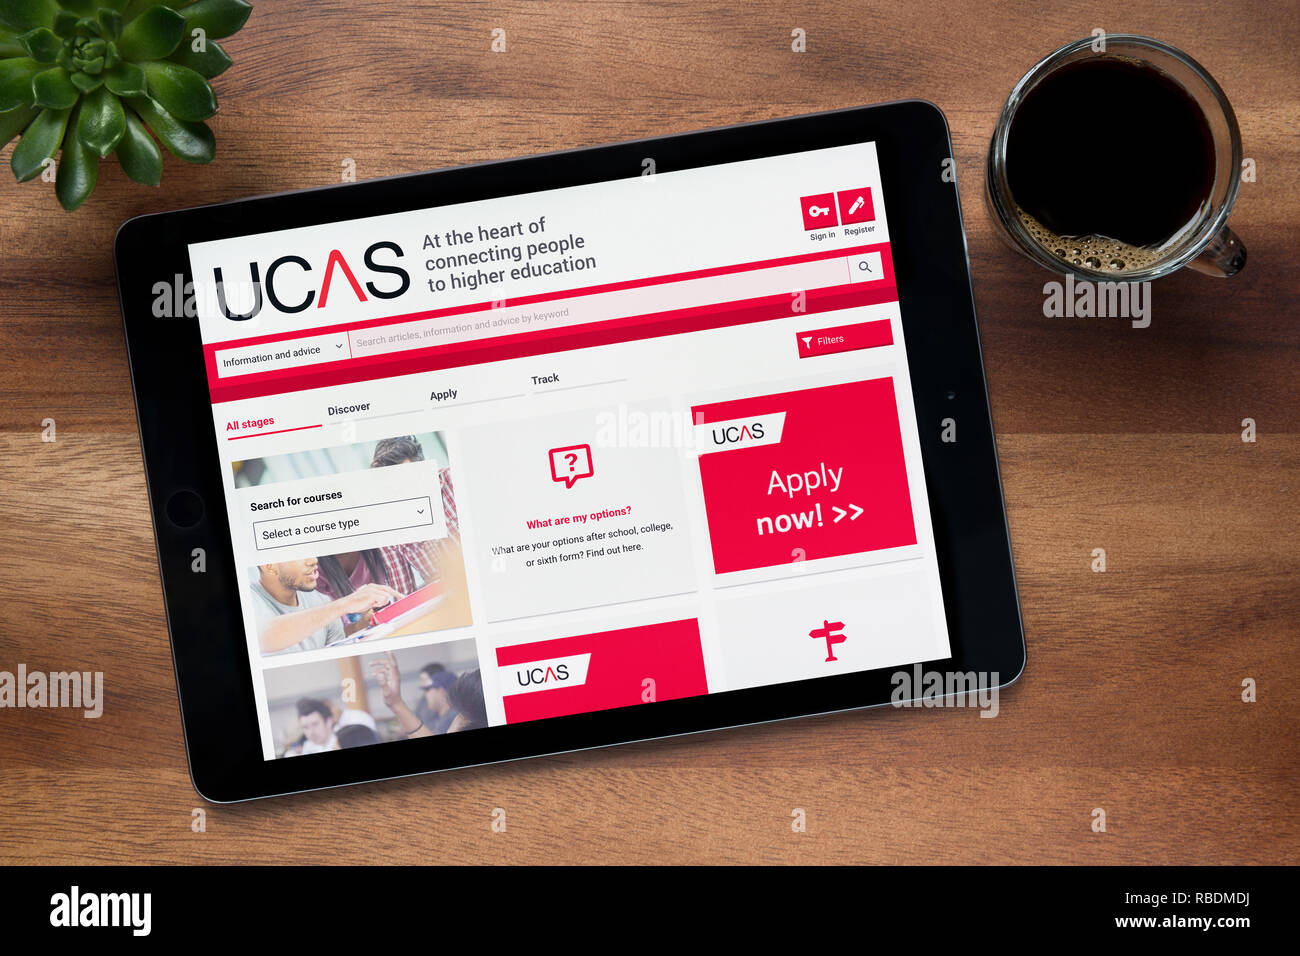 The website of UCAS (Universities and Colleges Admissions Service) is seen on an iPad tablet, resting on a wooden table (Editorial use only). - Stock Image